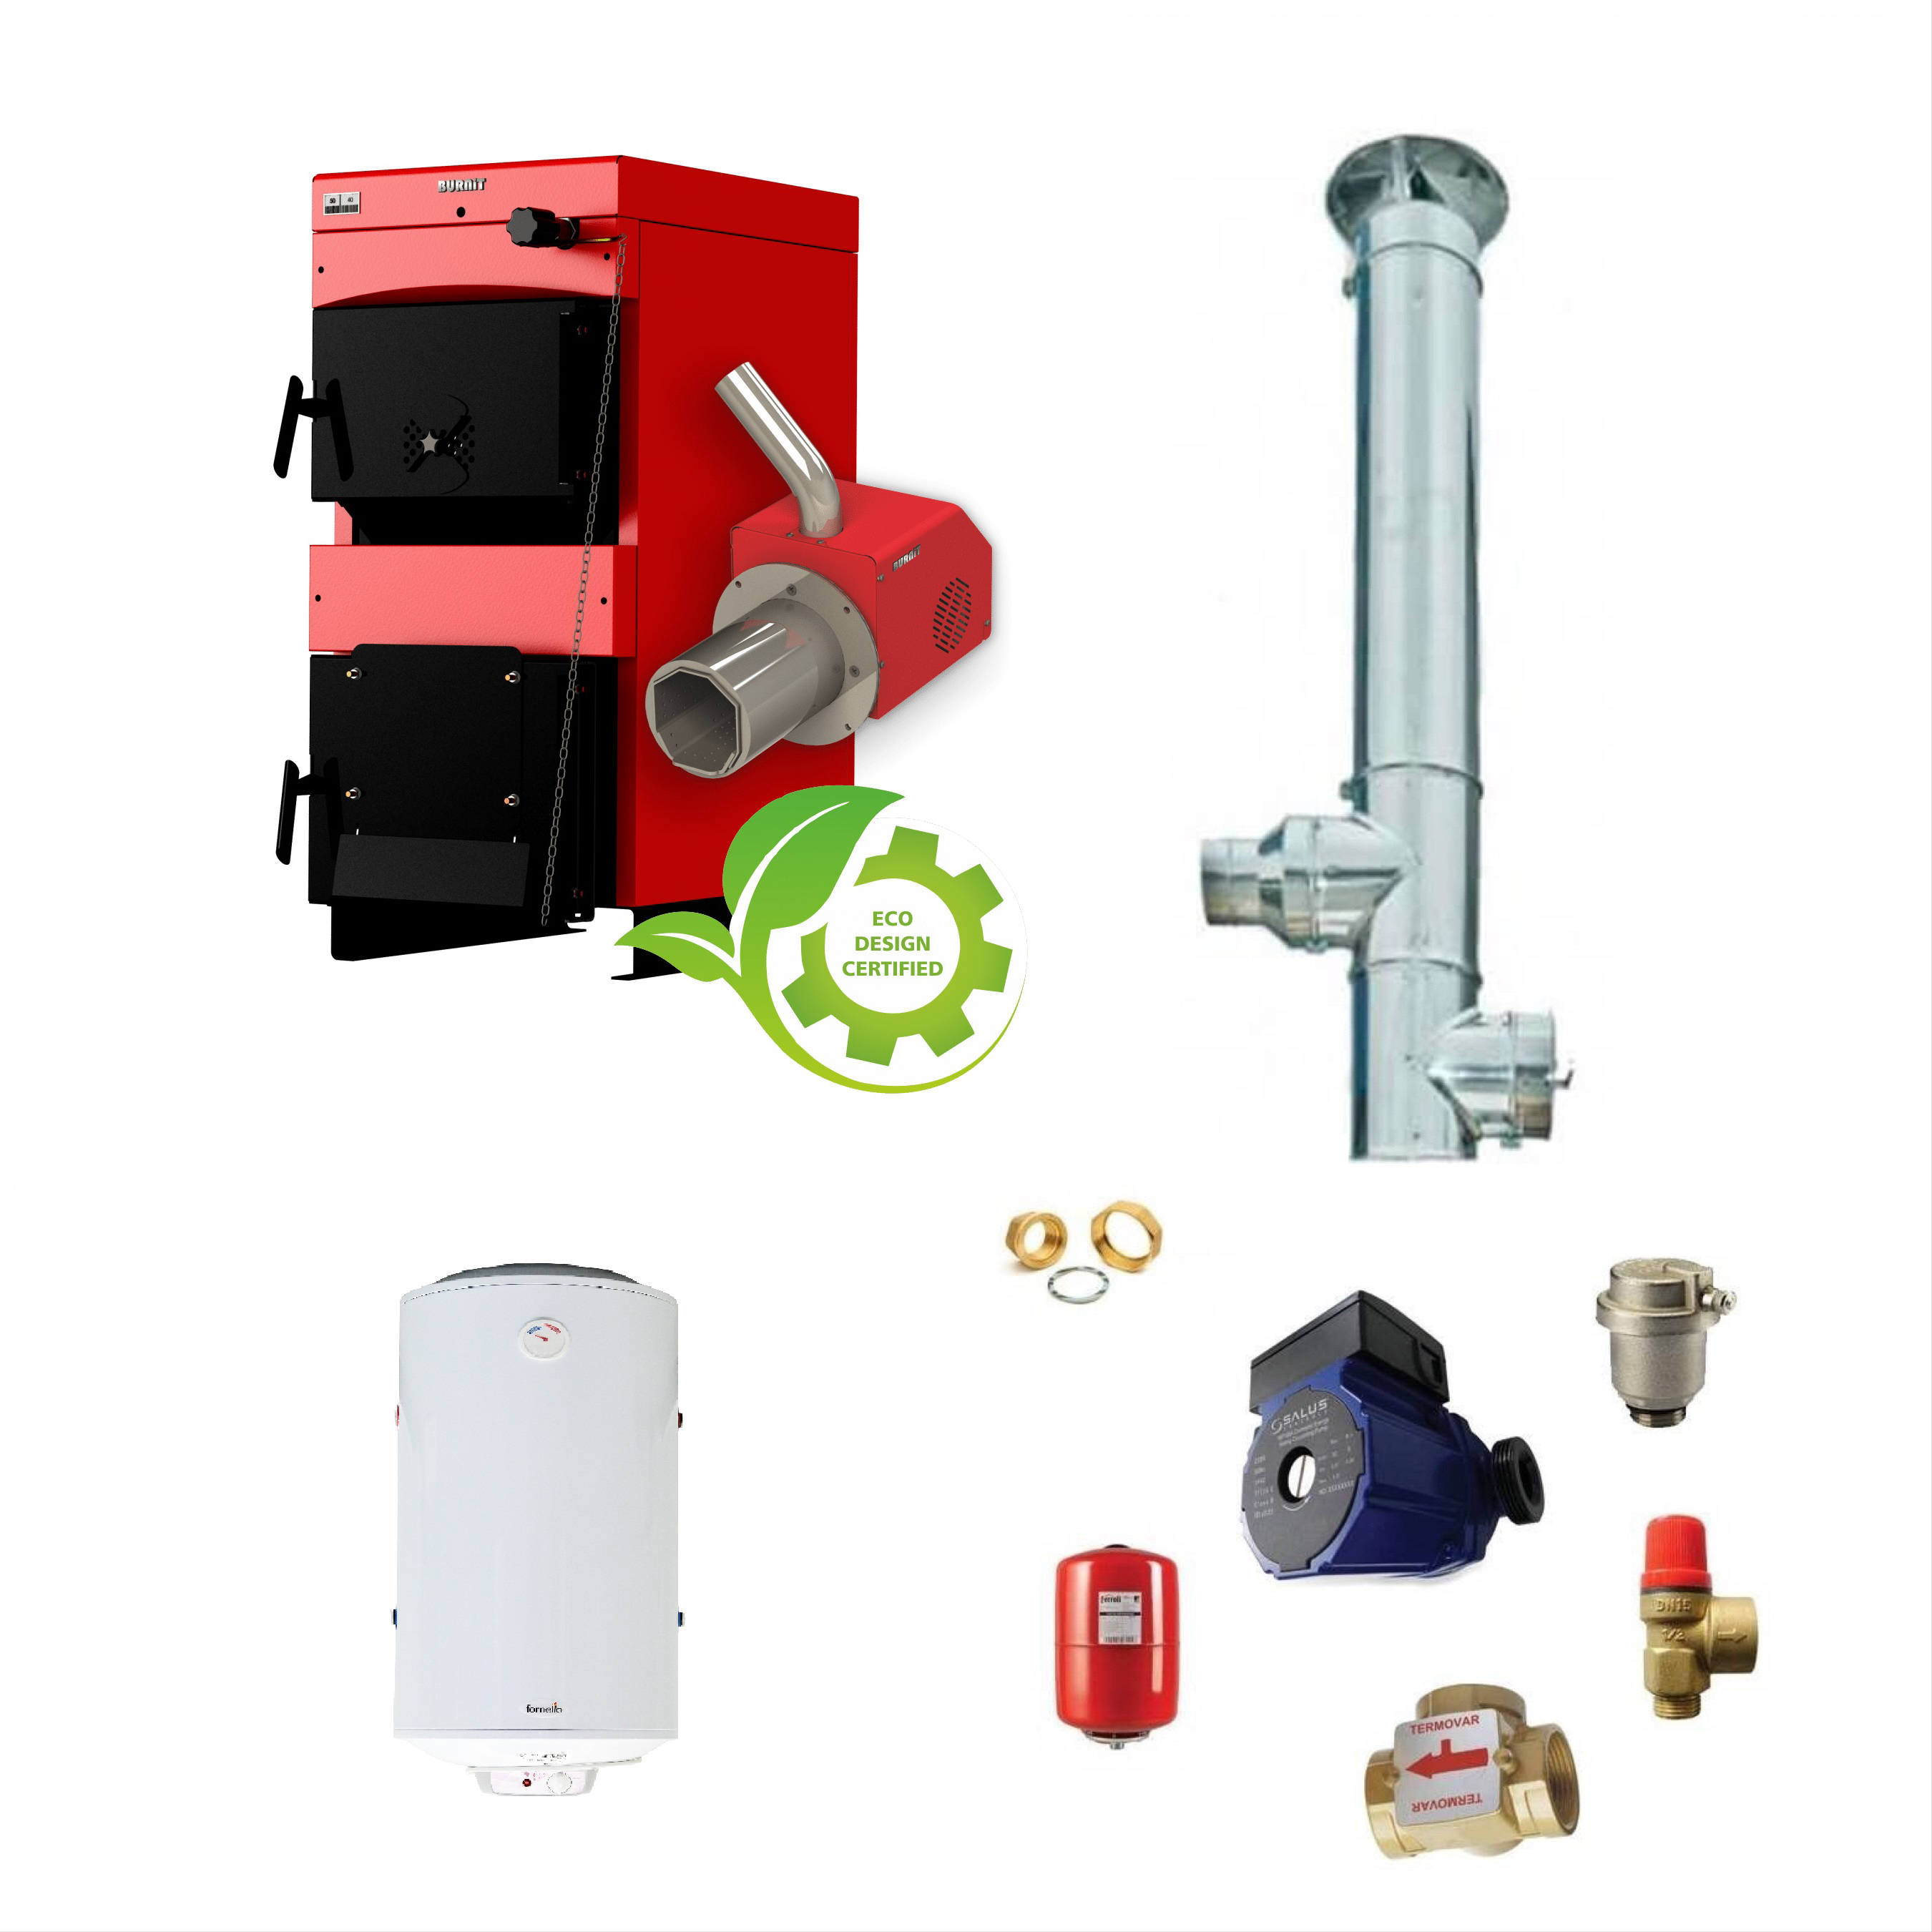 Pachet Centrala mixta lemn si peleti Burnit WBS 50 kW si Arzator pe peleti Pell Eco 35 kW, boiler Fornello 100 l, pompa 25-60, vas expansiune, supapa, aerisitor, termostat de contact, vana 3 cai, cos inox diametru 200 mm dublu perete, inaltime 6 metr fornello imagine